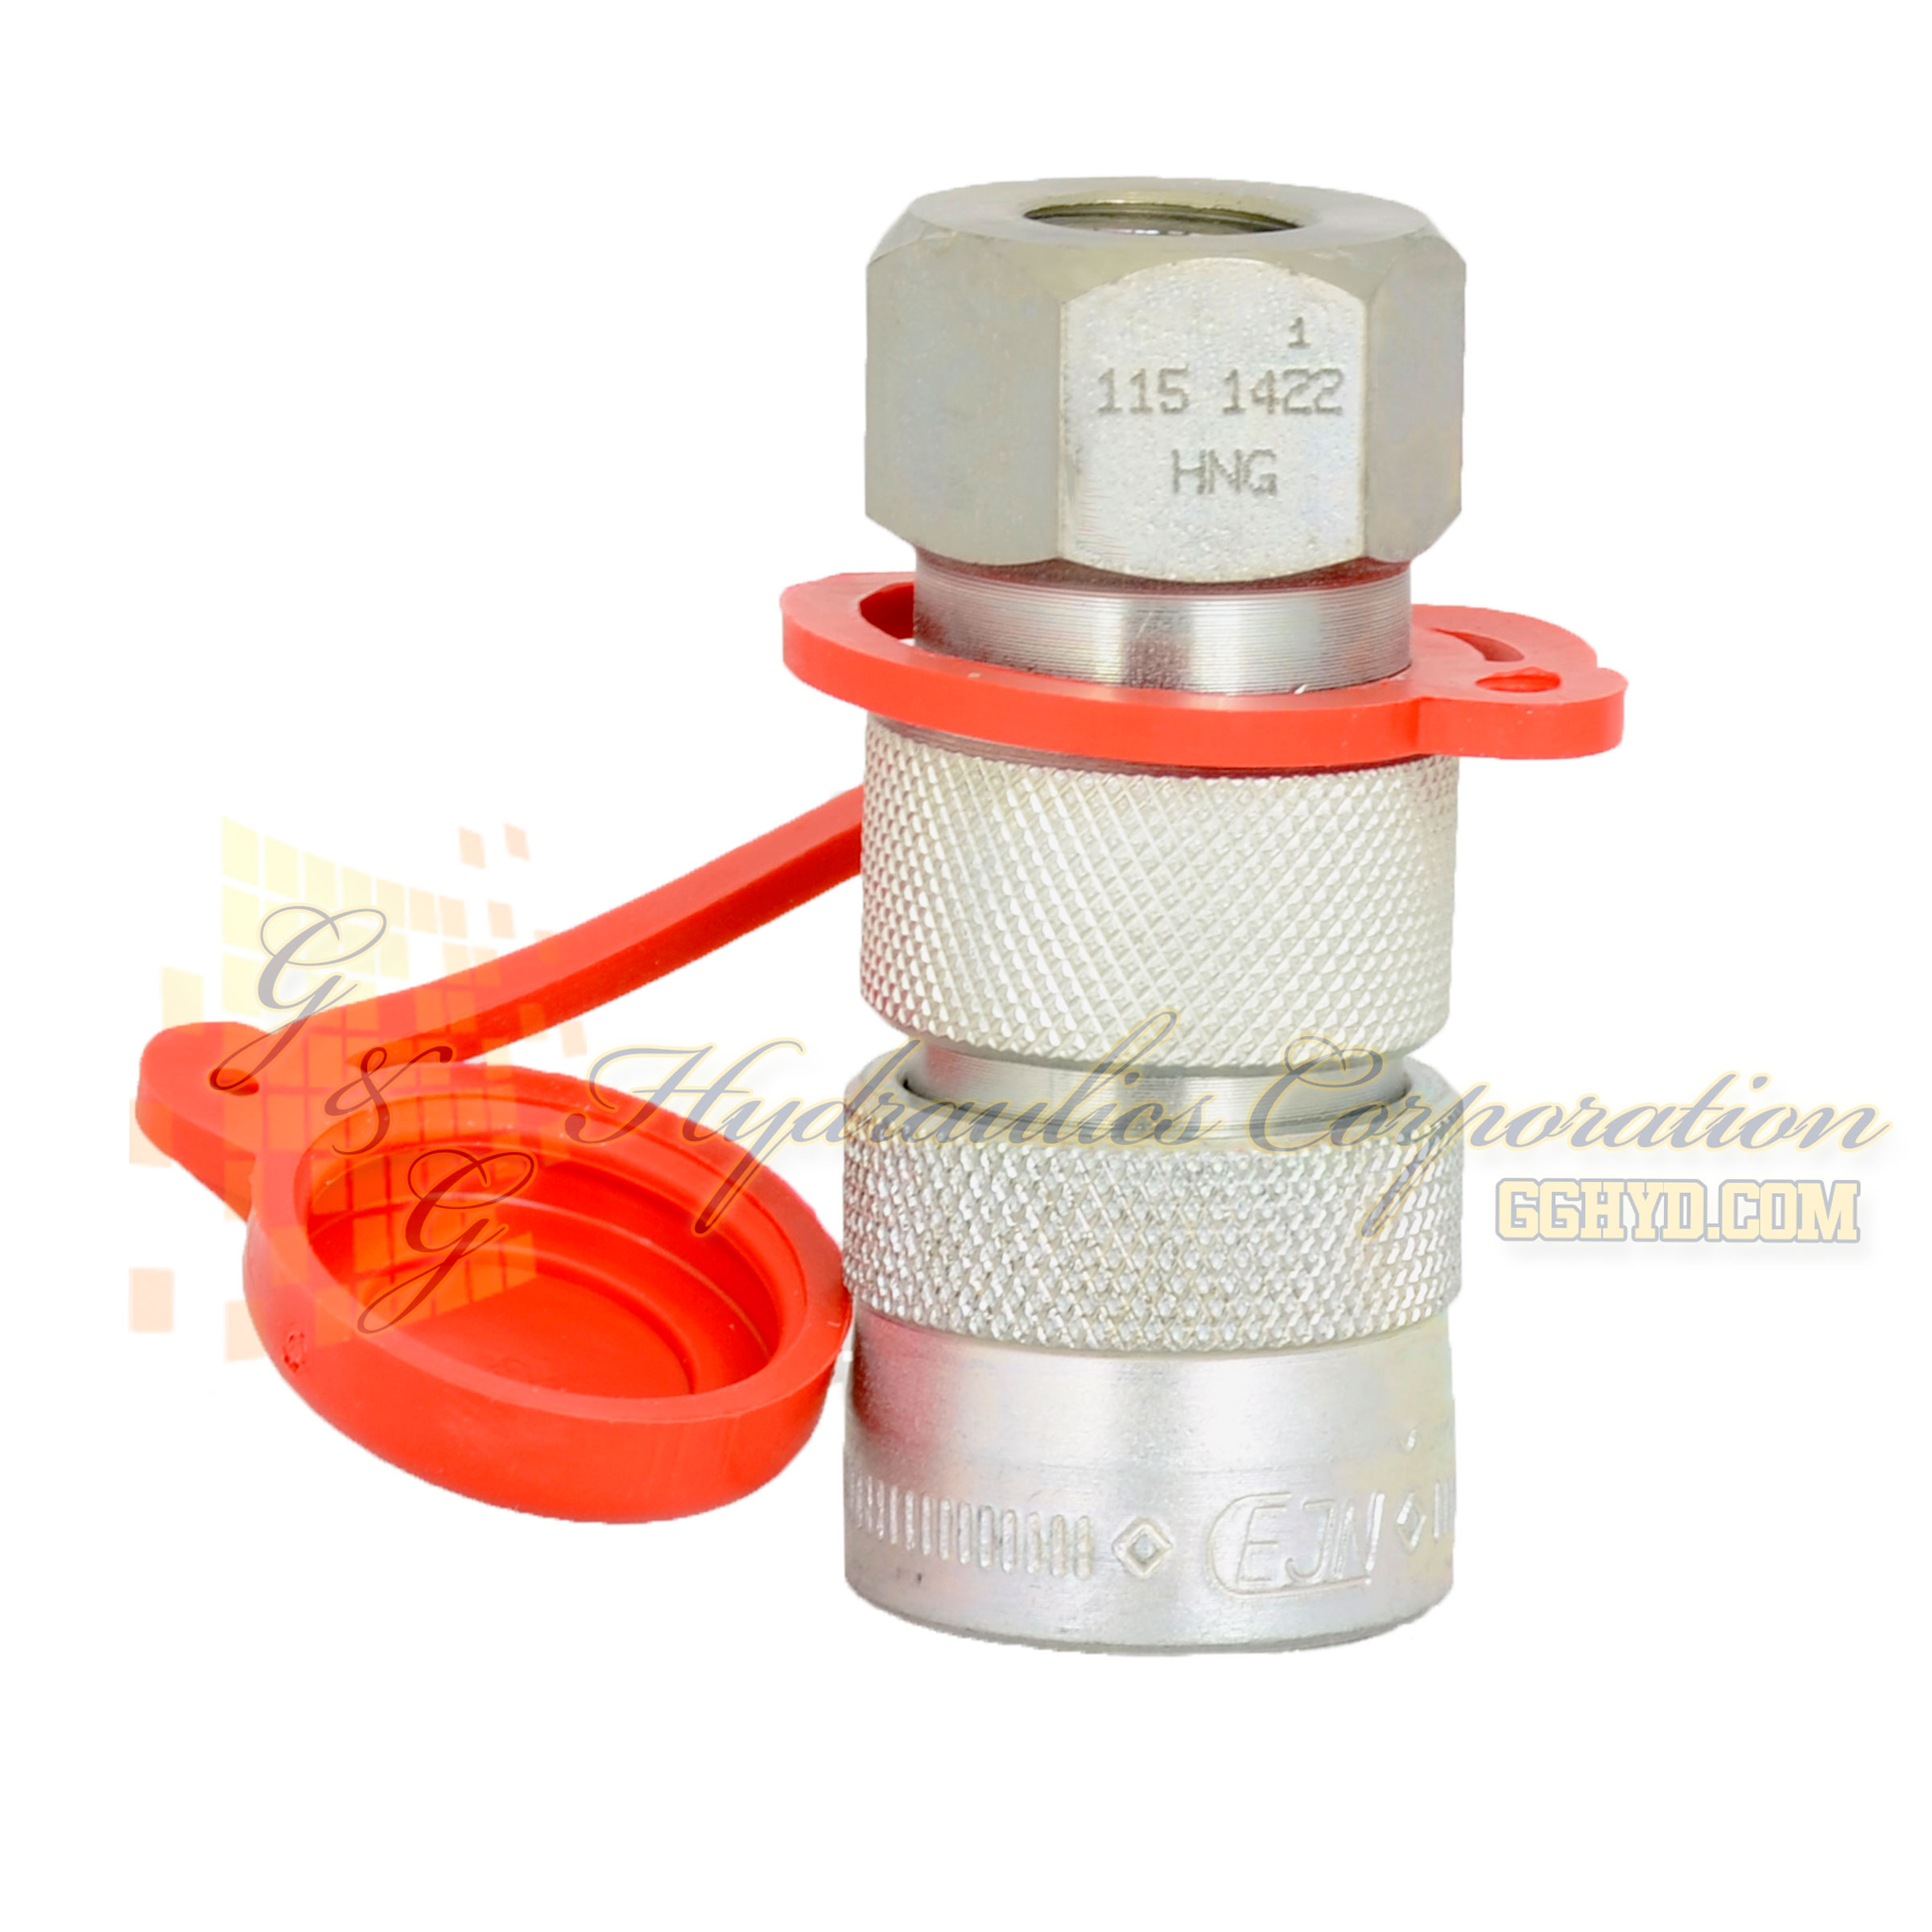 "10-115-1222 CEJN Quick Disconnect Coupler, 1/4"" BSPP Female Threads w/ Locking Ring, 14,500 PSI (1000 bar)"